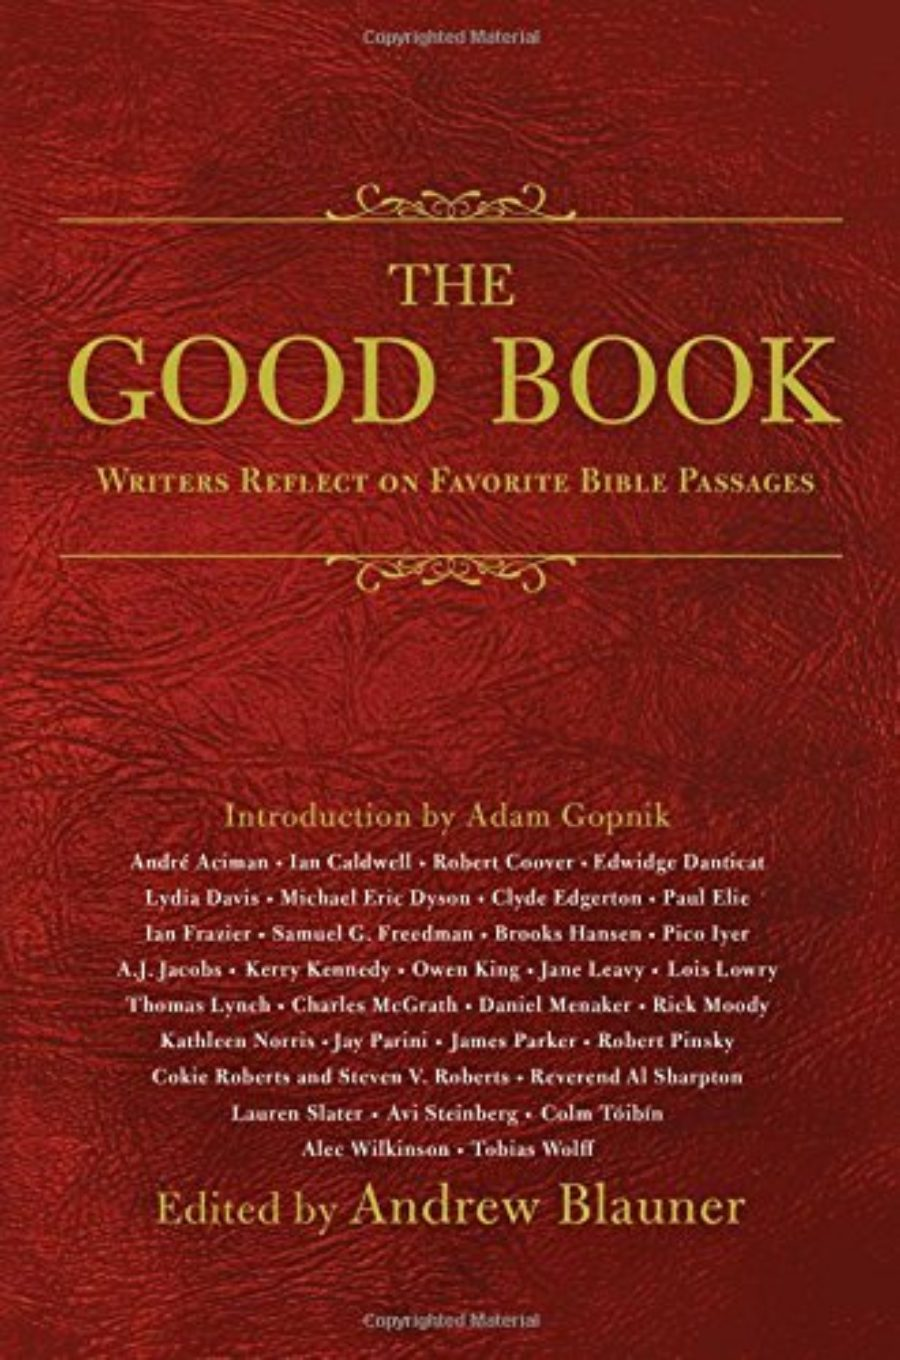 Cover of The Good Book: Writers Reflect on Favorite Bible Passages